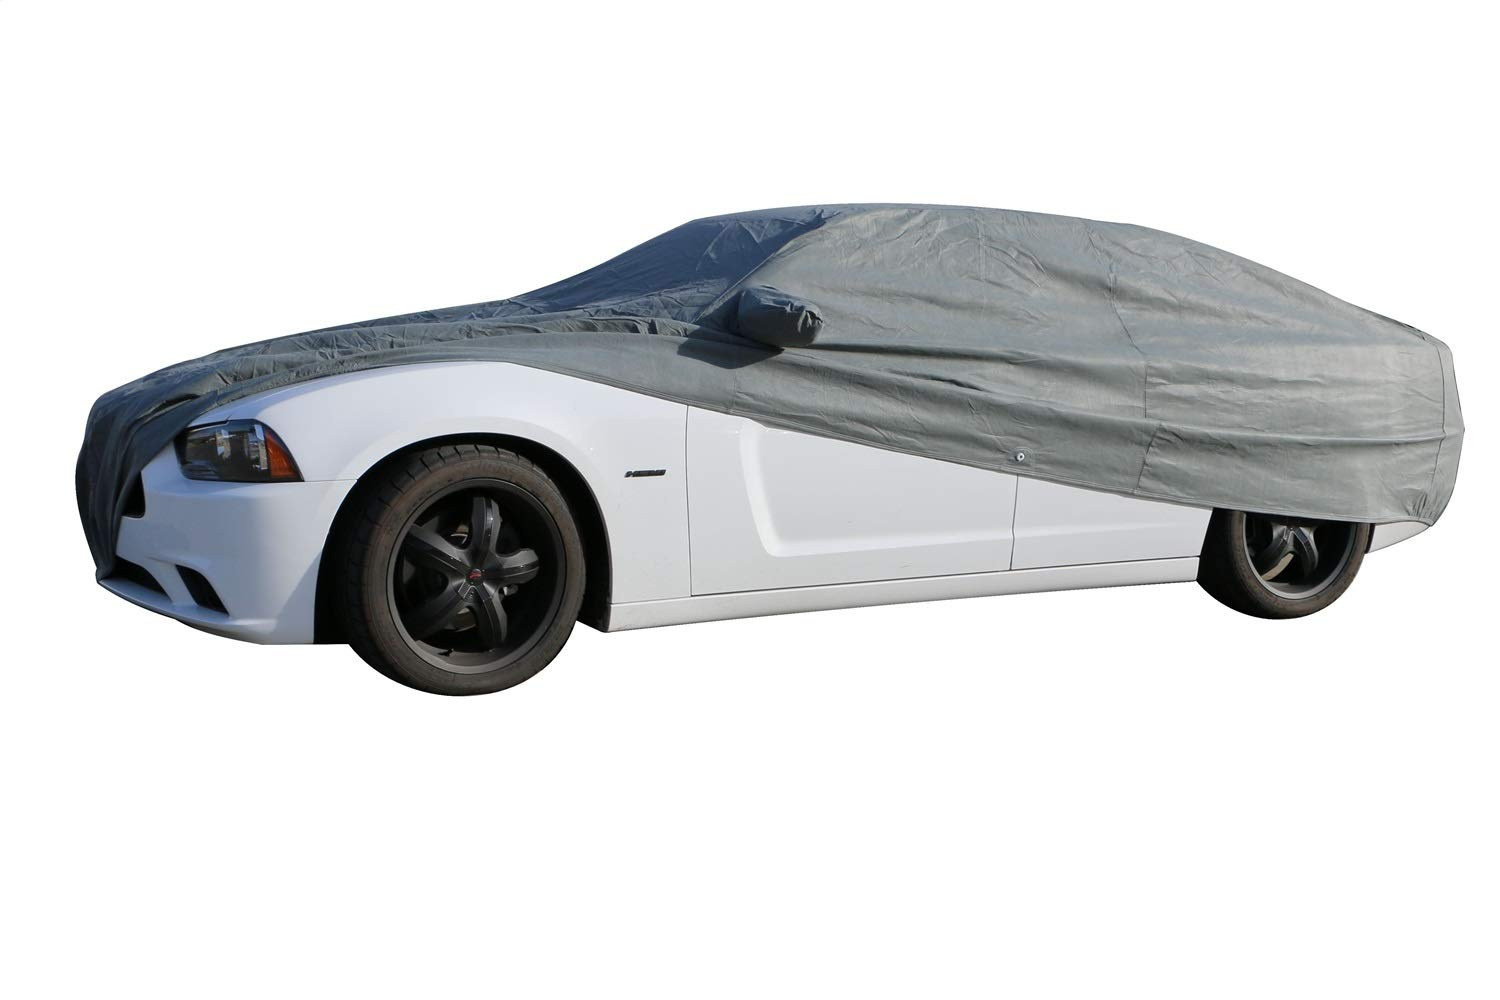 Rampage Products 1505 Grey Custom Vehicle Cover 4-Layer Breathable with Lock Cable /& Storage Bag for 2010-2014 Dodge Charger